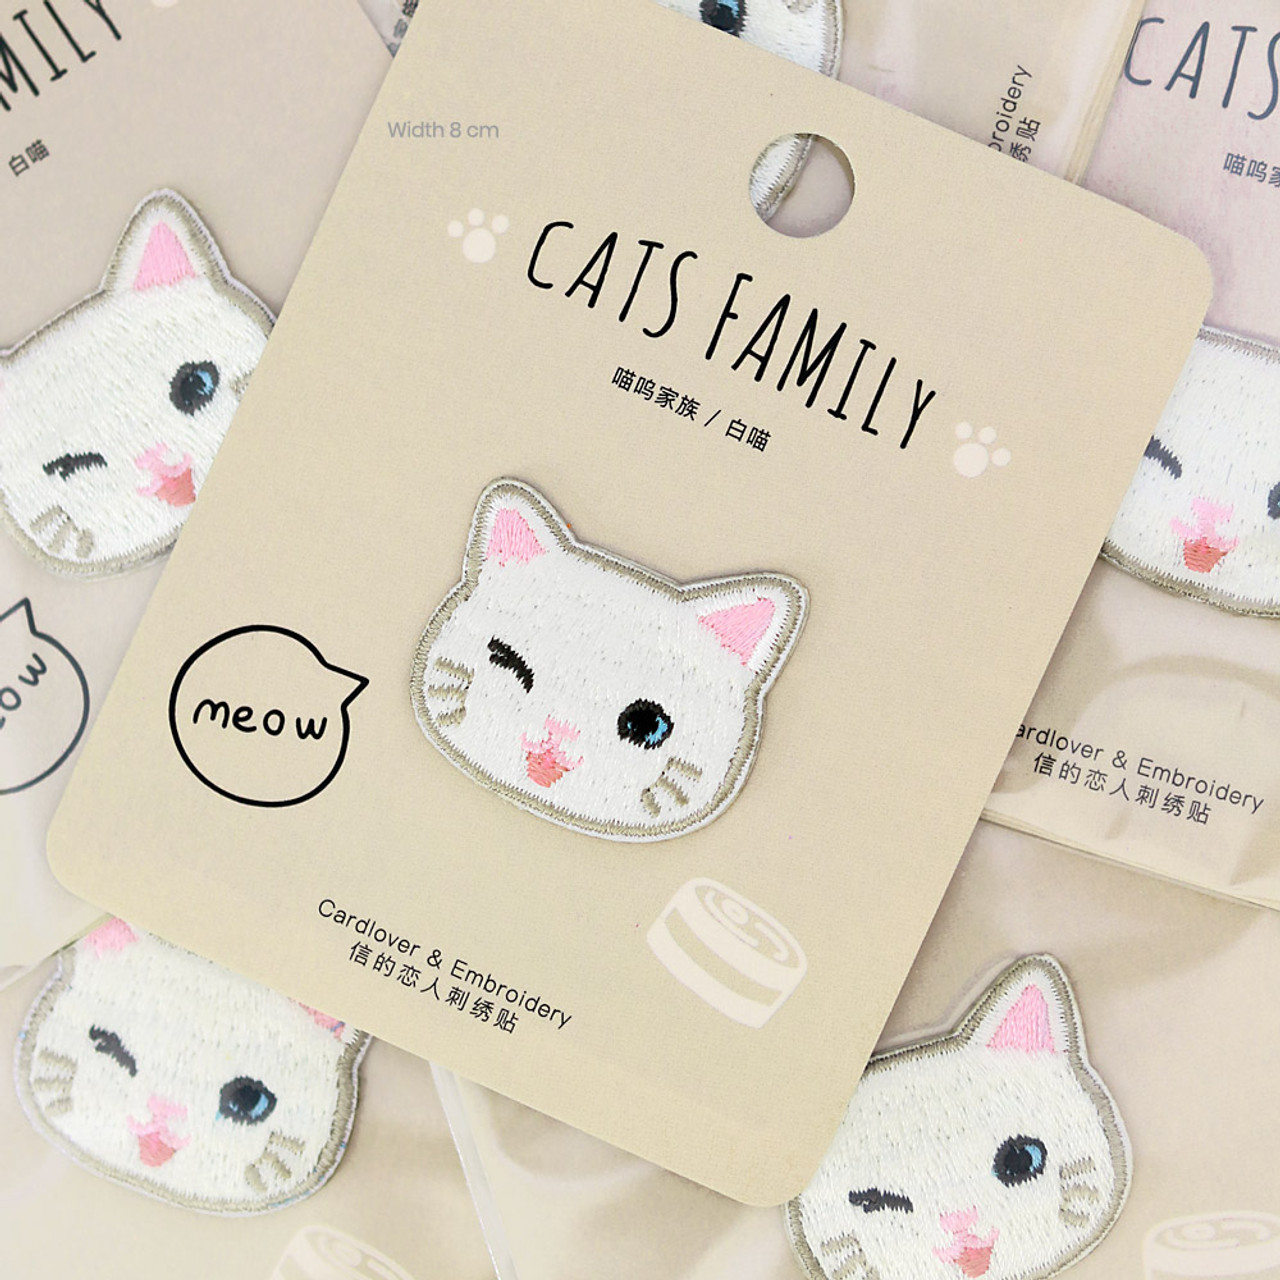 Cats Family White Cat Iron On Patch ( Mood Shot )